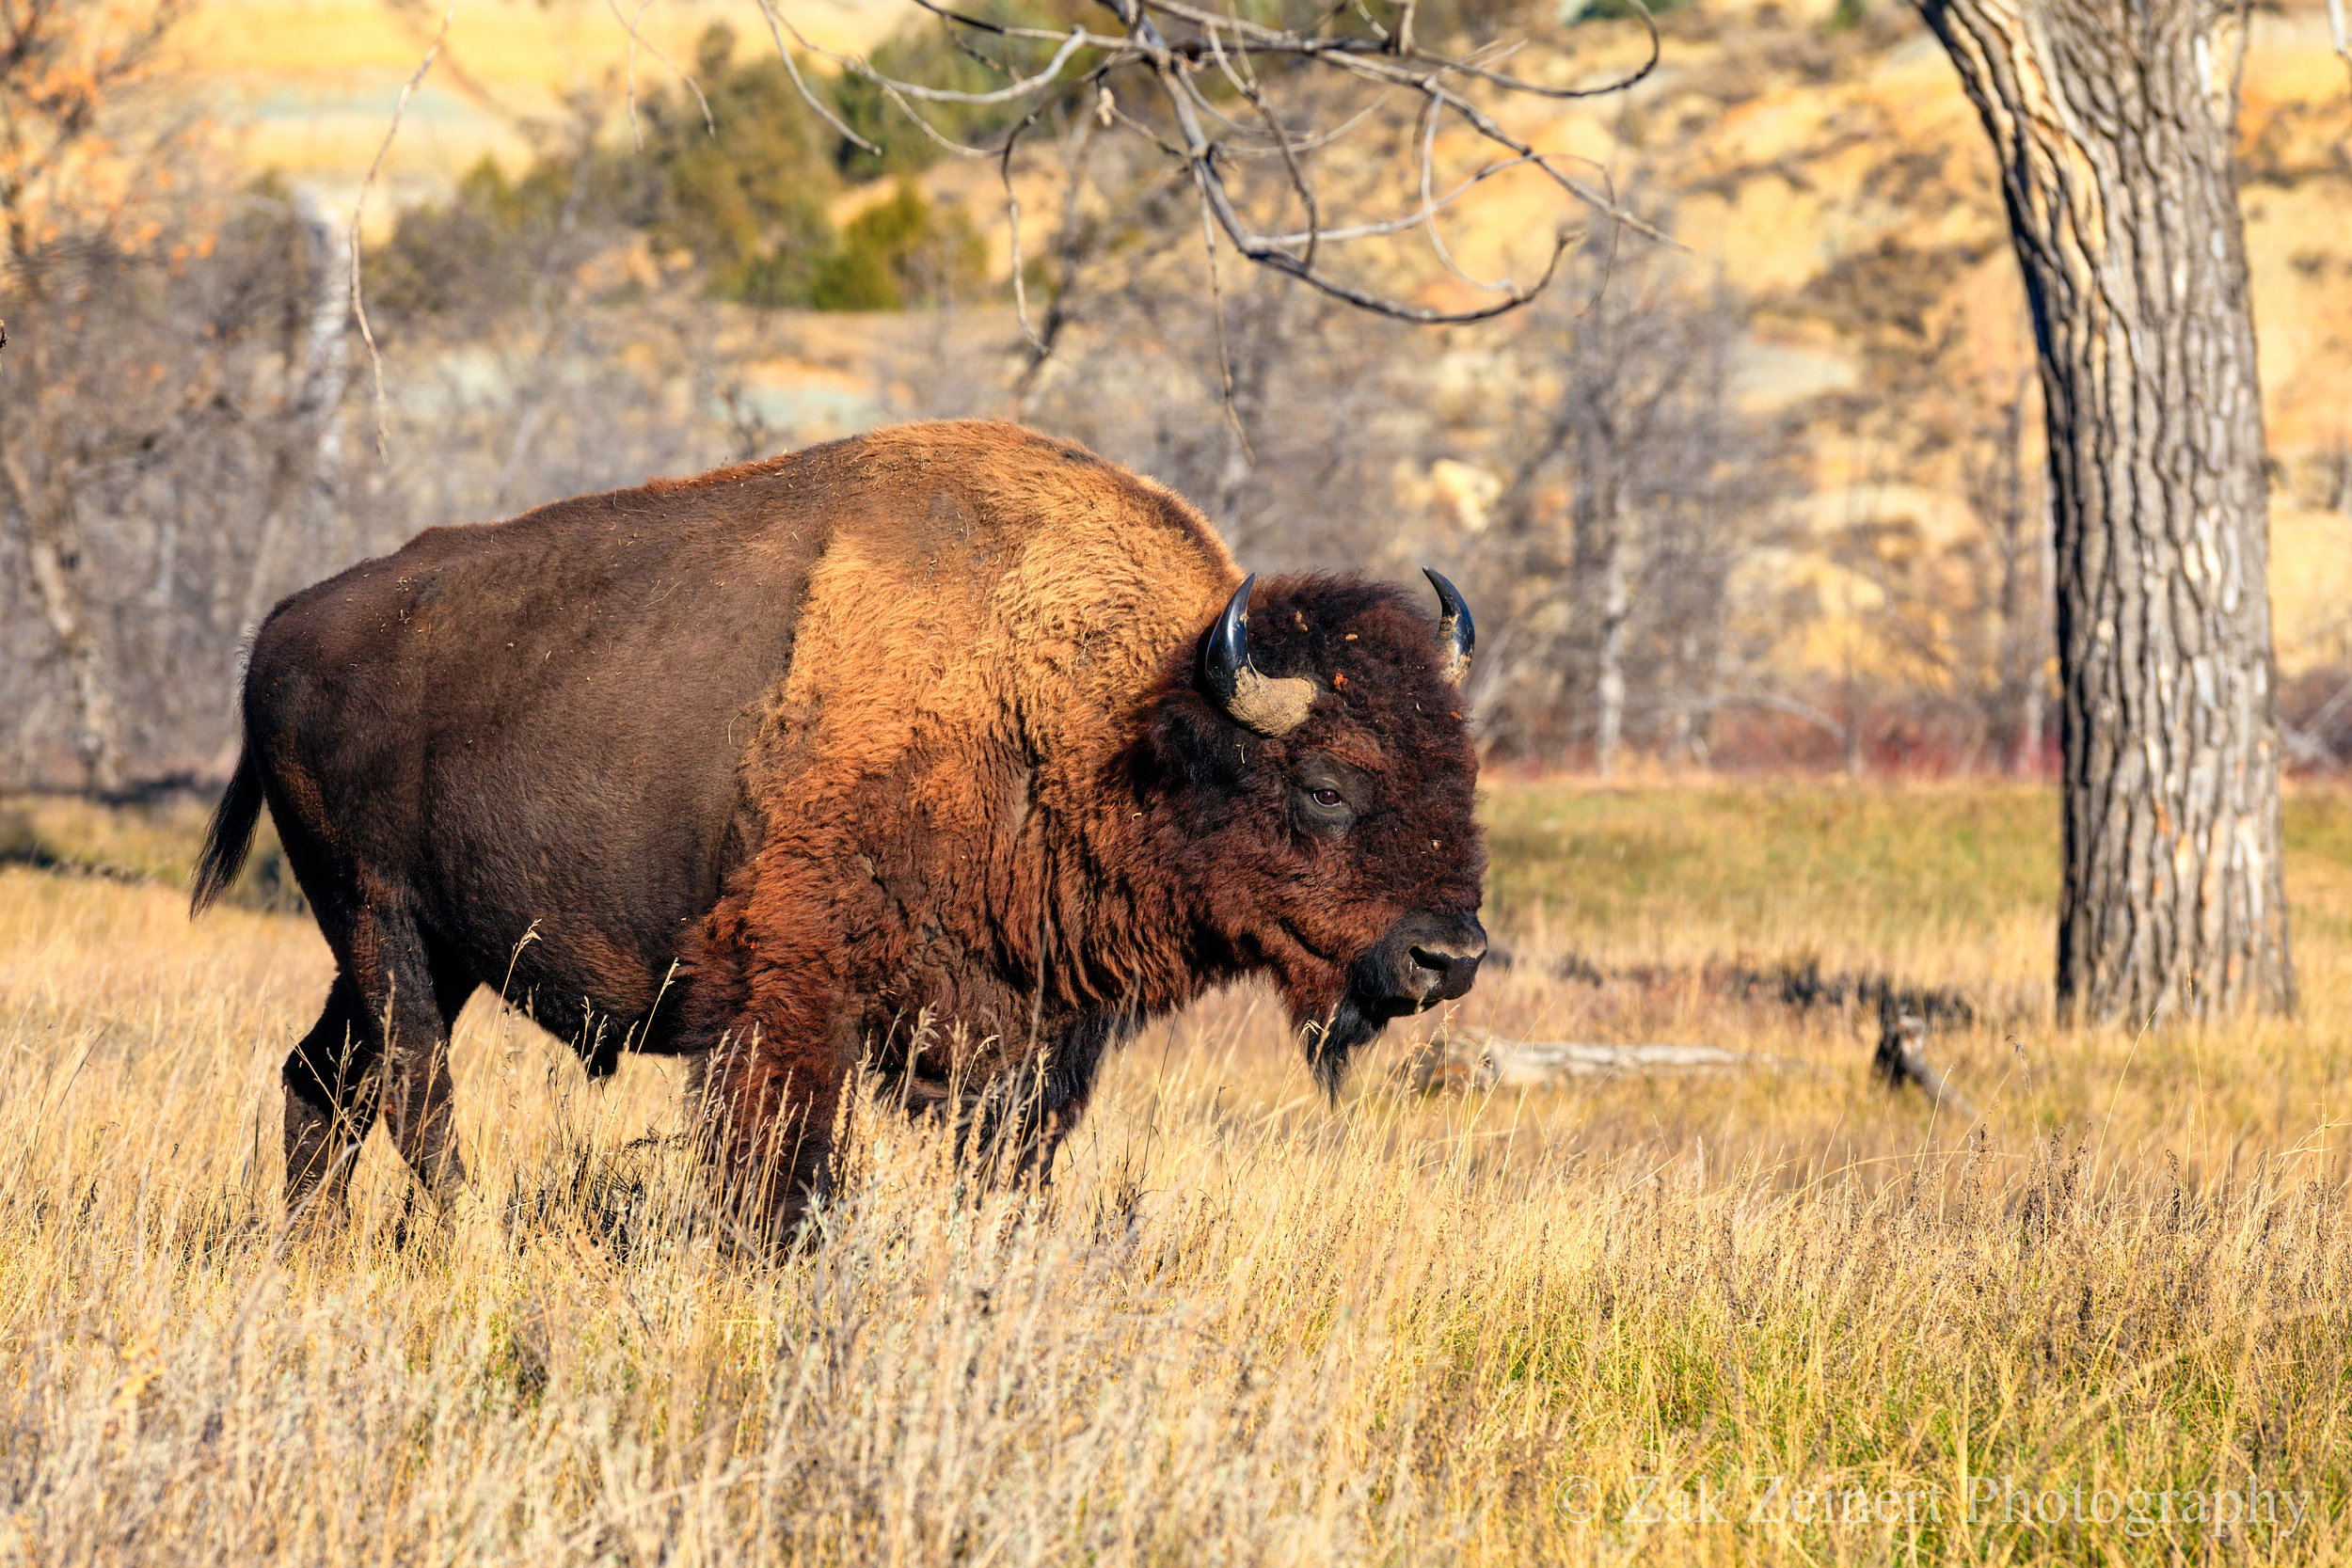 A buffalo wanders through my camp at Juniper Campground